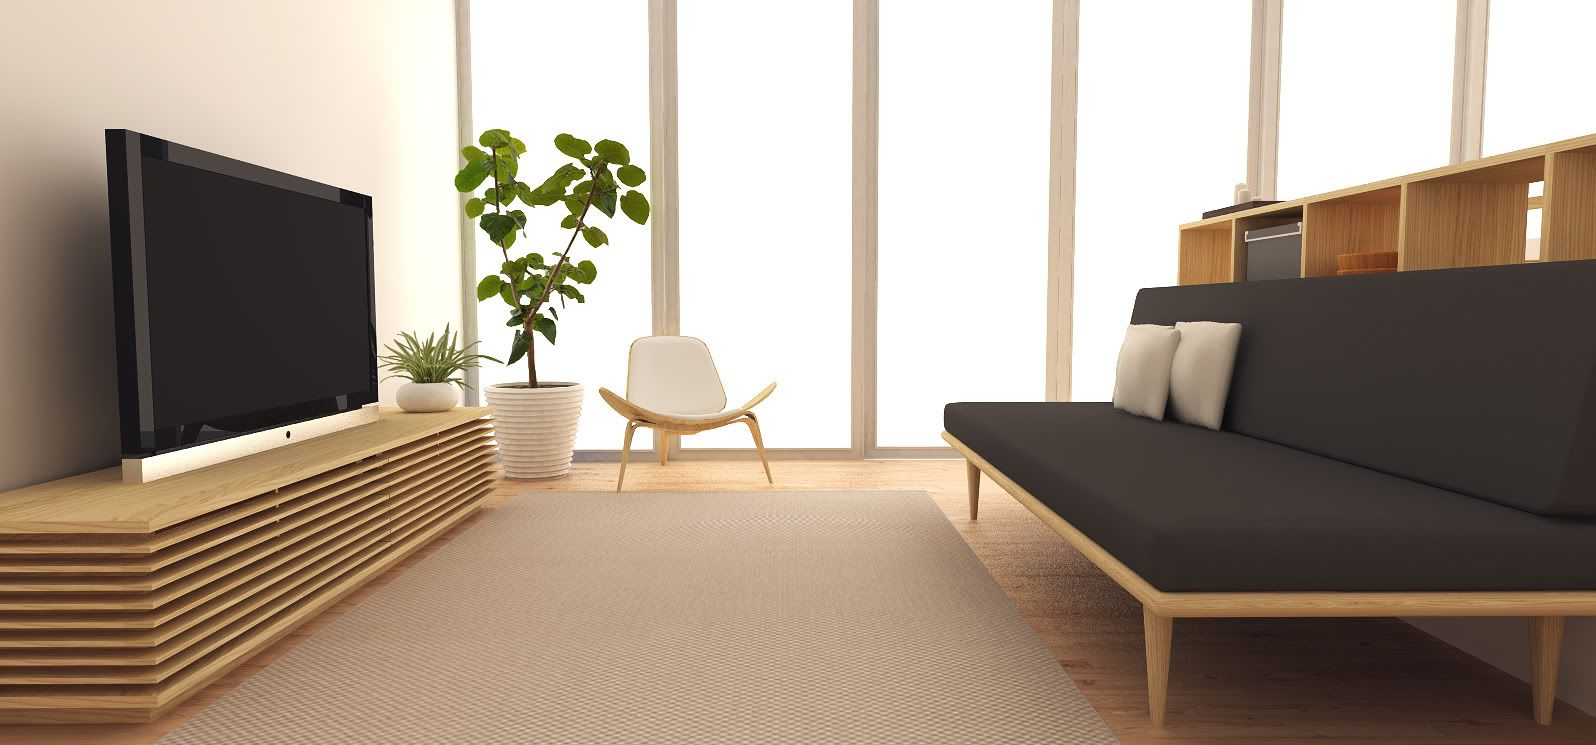 Minimalist tv console simple chair durable carpet and for Minimalist apartment living room